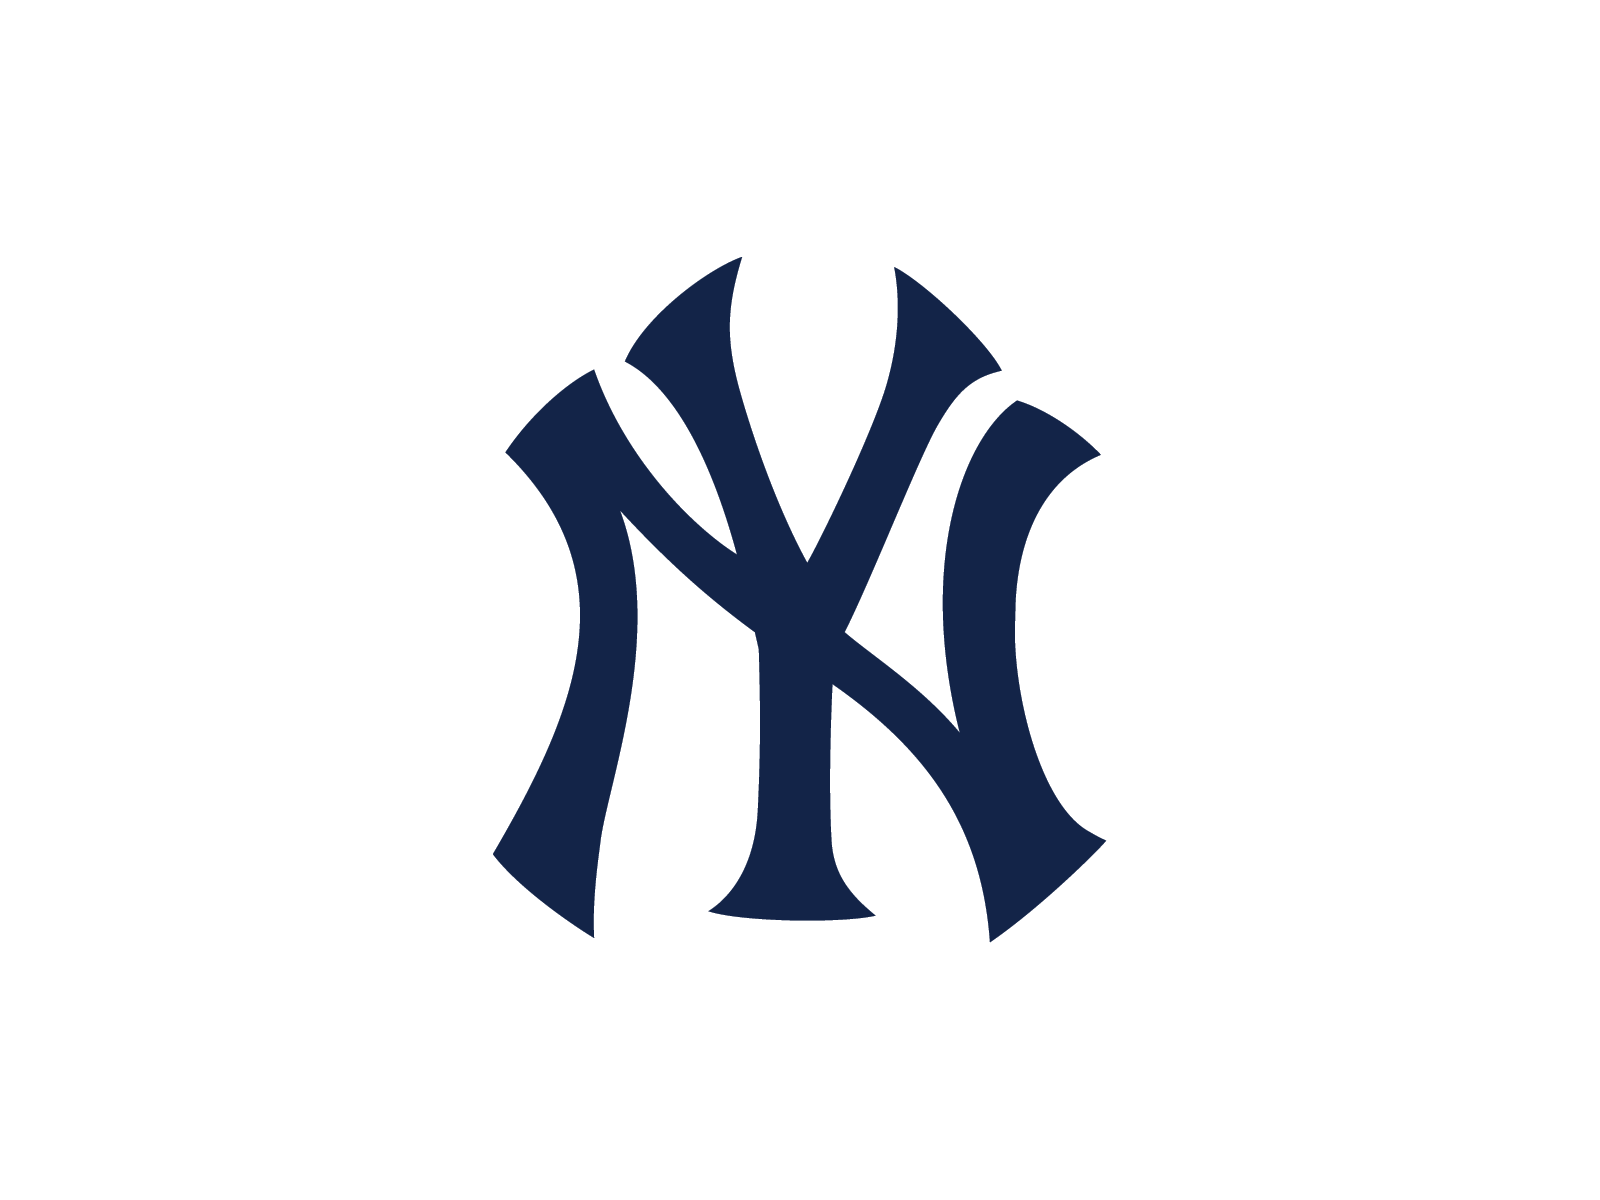 New York Yankees New PlusPng pluspng.com - New York Yankees Logo Vector PNG - New York Yankees PNG